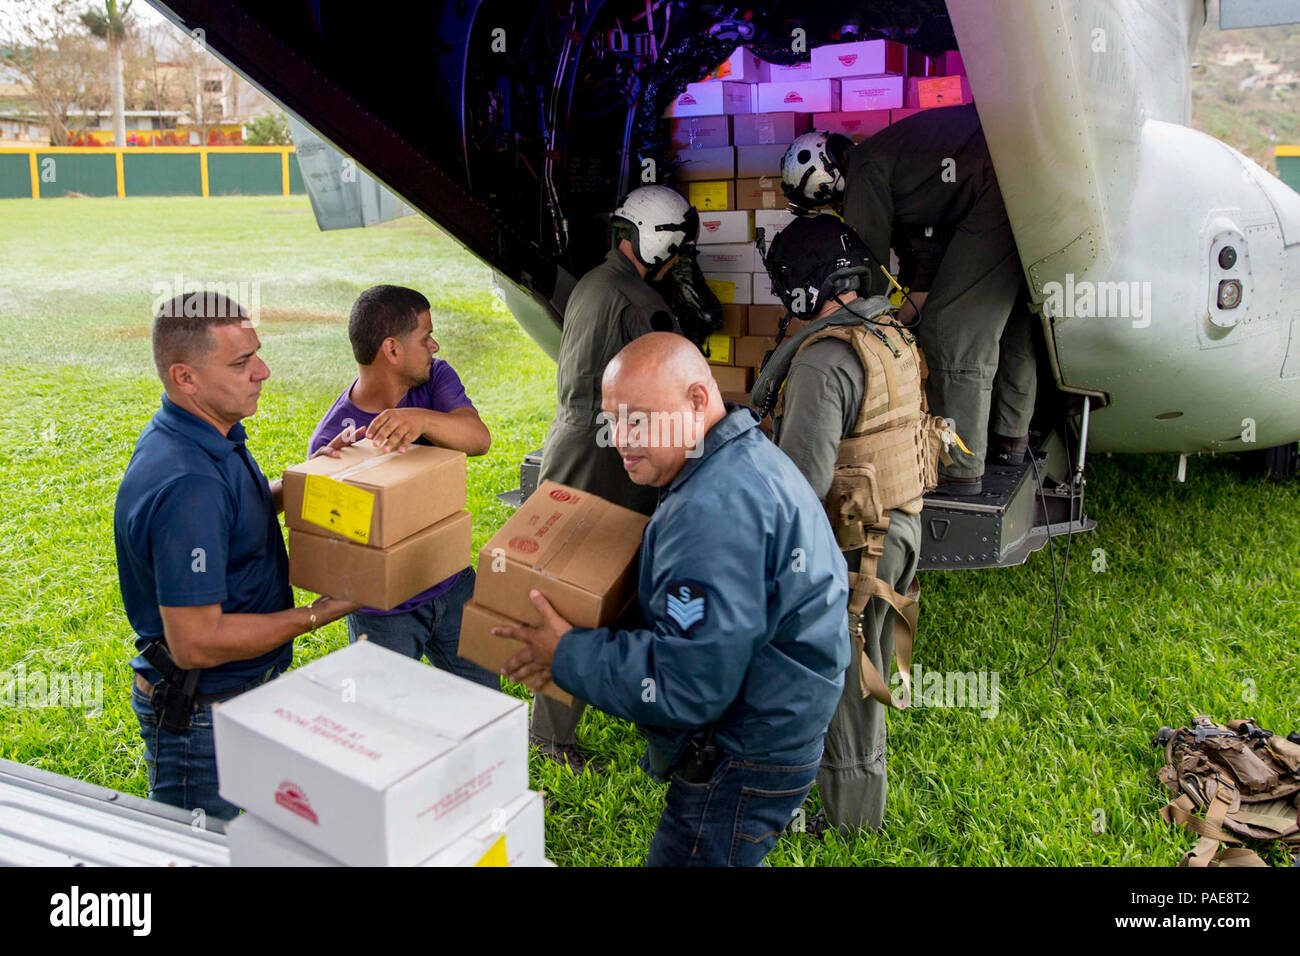 JAYUYA, Puerto Rico (Sept. 27, 2017) Marines assigned to Marine Medium Tiltrotor Squadron 162, embarked aboard the amphibious assault ship USS Kearsarge (LHD 3), and local volunteers unload food from an MV-22 Osprey in Jayuya, Puerto Rico. Kearsarge is assisting with relief efforts in the aftermath of Hurricane Maria. The Department of Defense is supporting the Federal Emergency Management Agency, the lead federal agency, in helping those affected by Hurricane Maria to minimize suffering and is one component of the overall whole-of-government response effort. - Stock Image